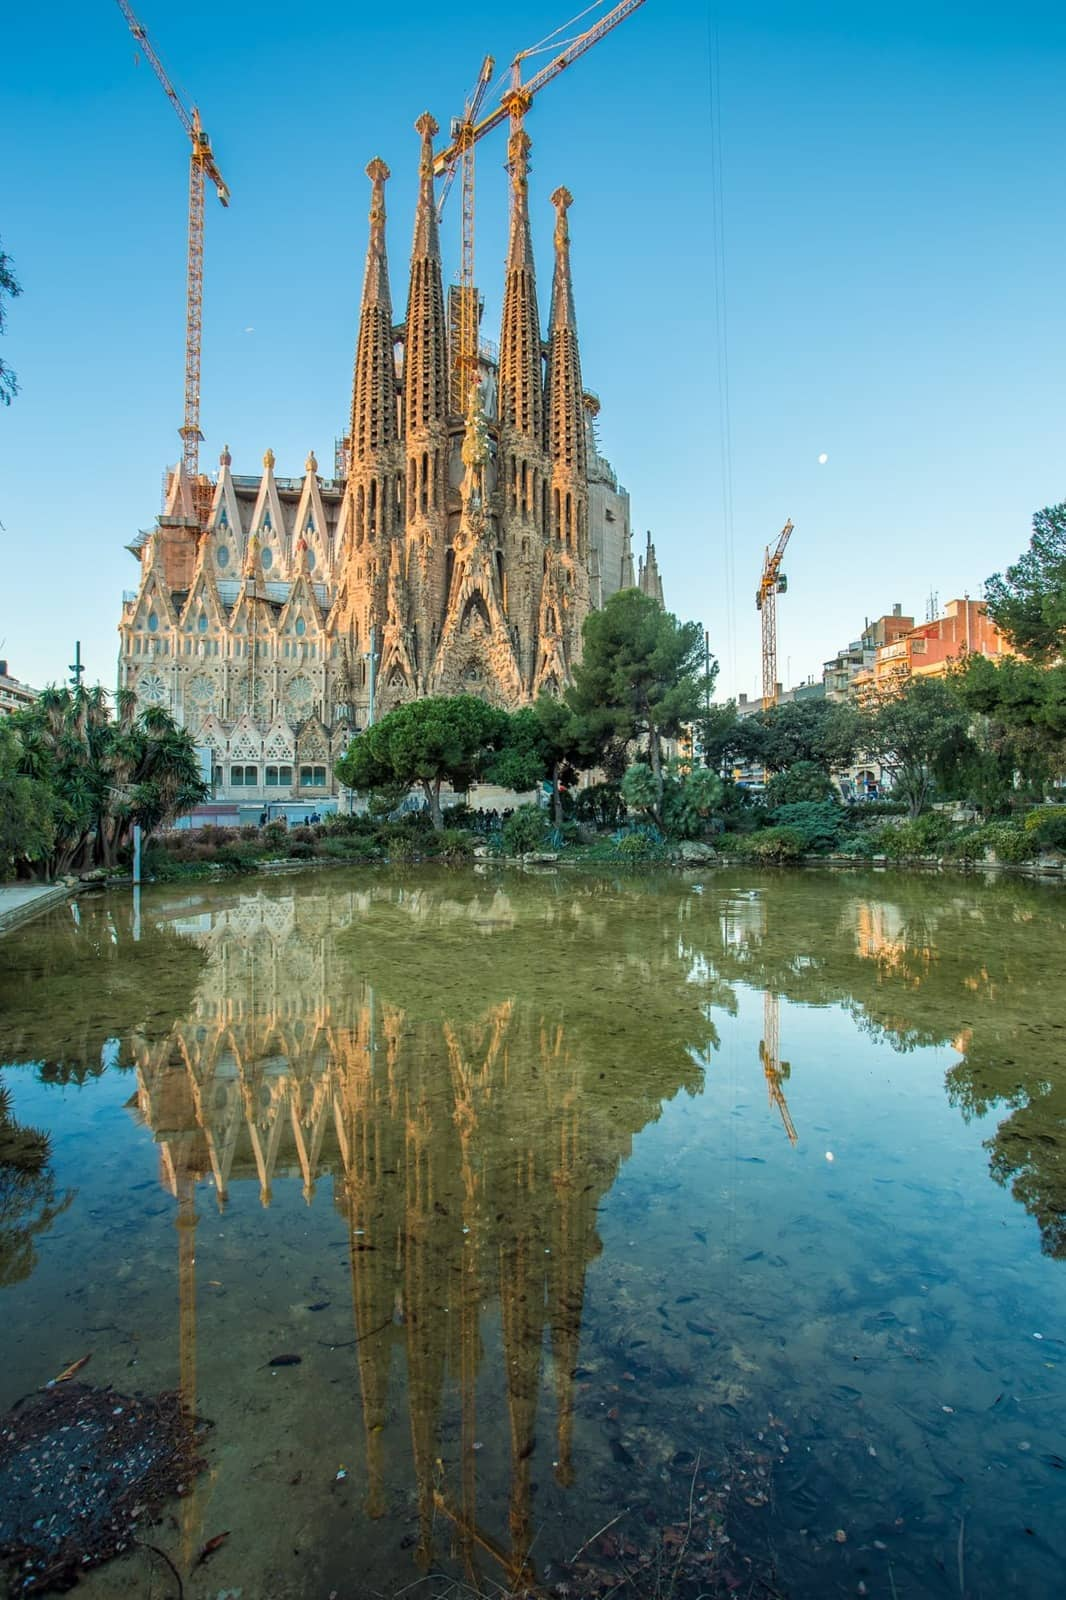 The Best Photography Spots in Barcelona - Finding the Universe